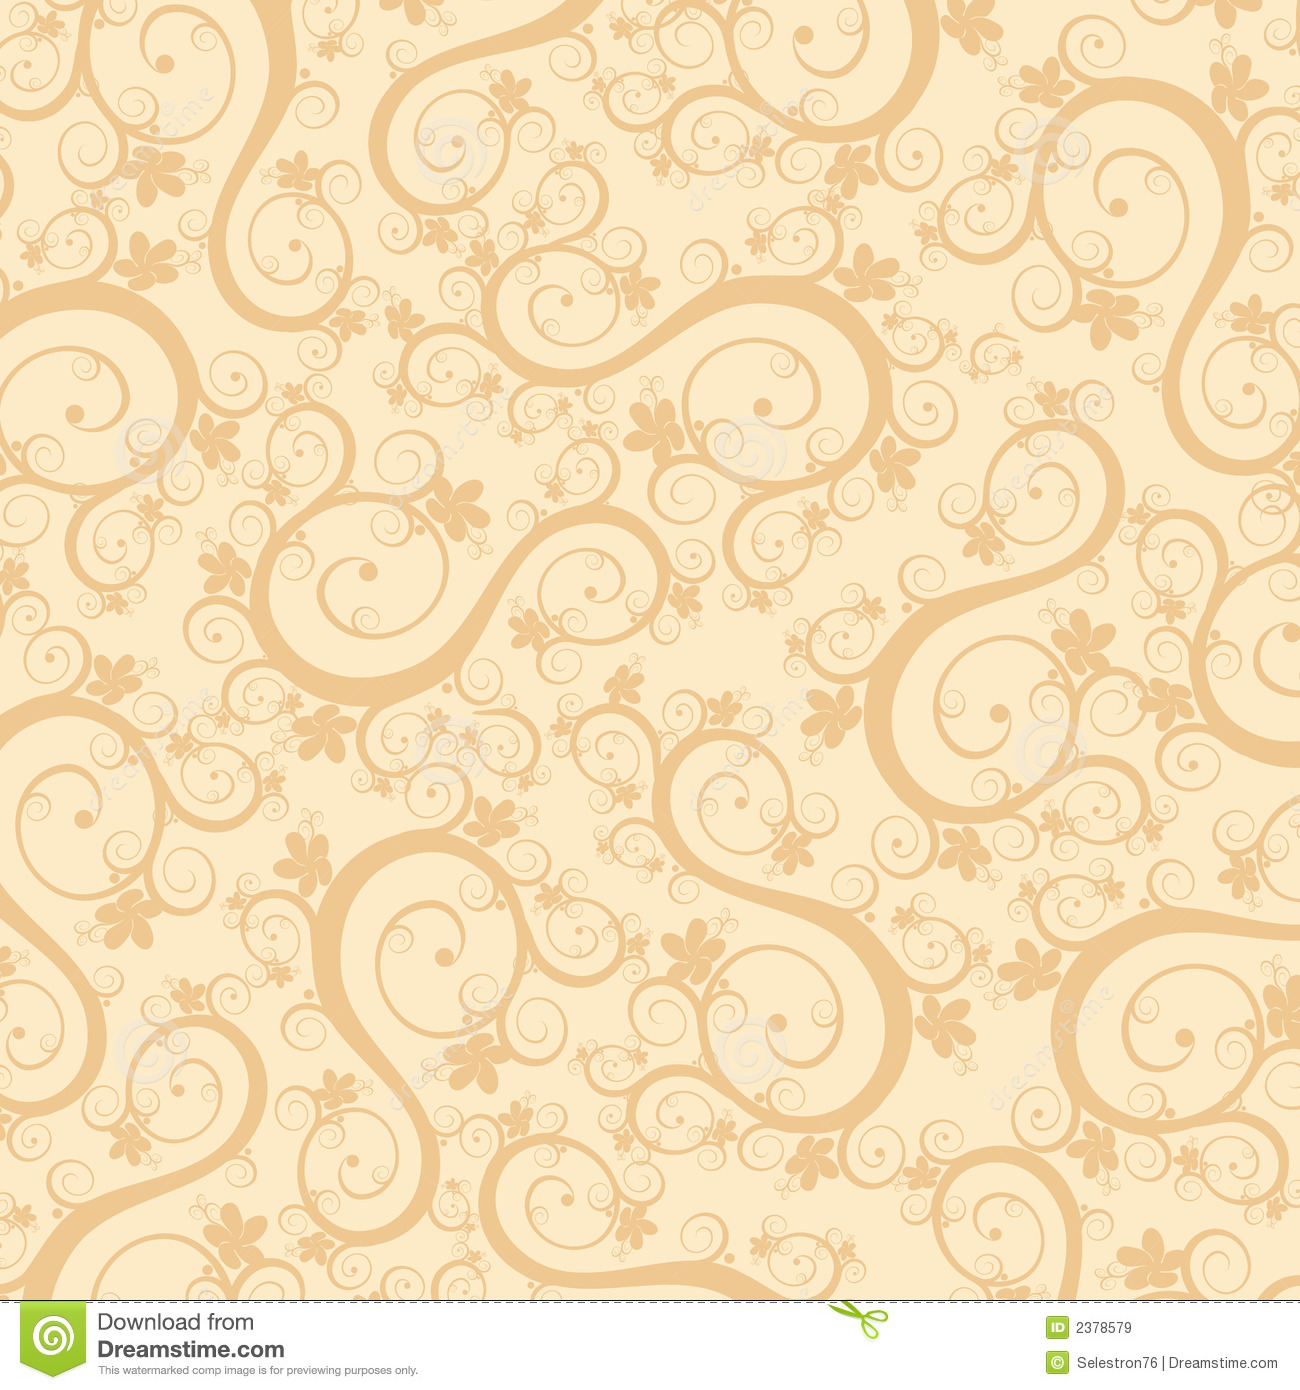 calligraphy flowers wallpaper royalty free stock images